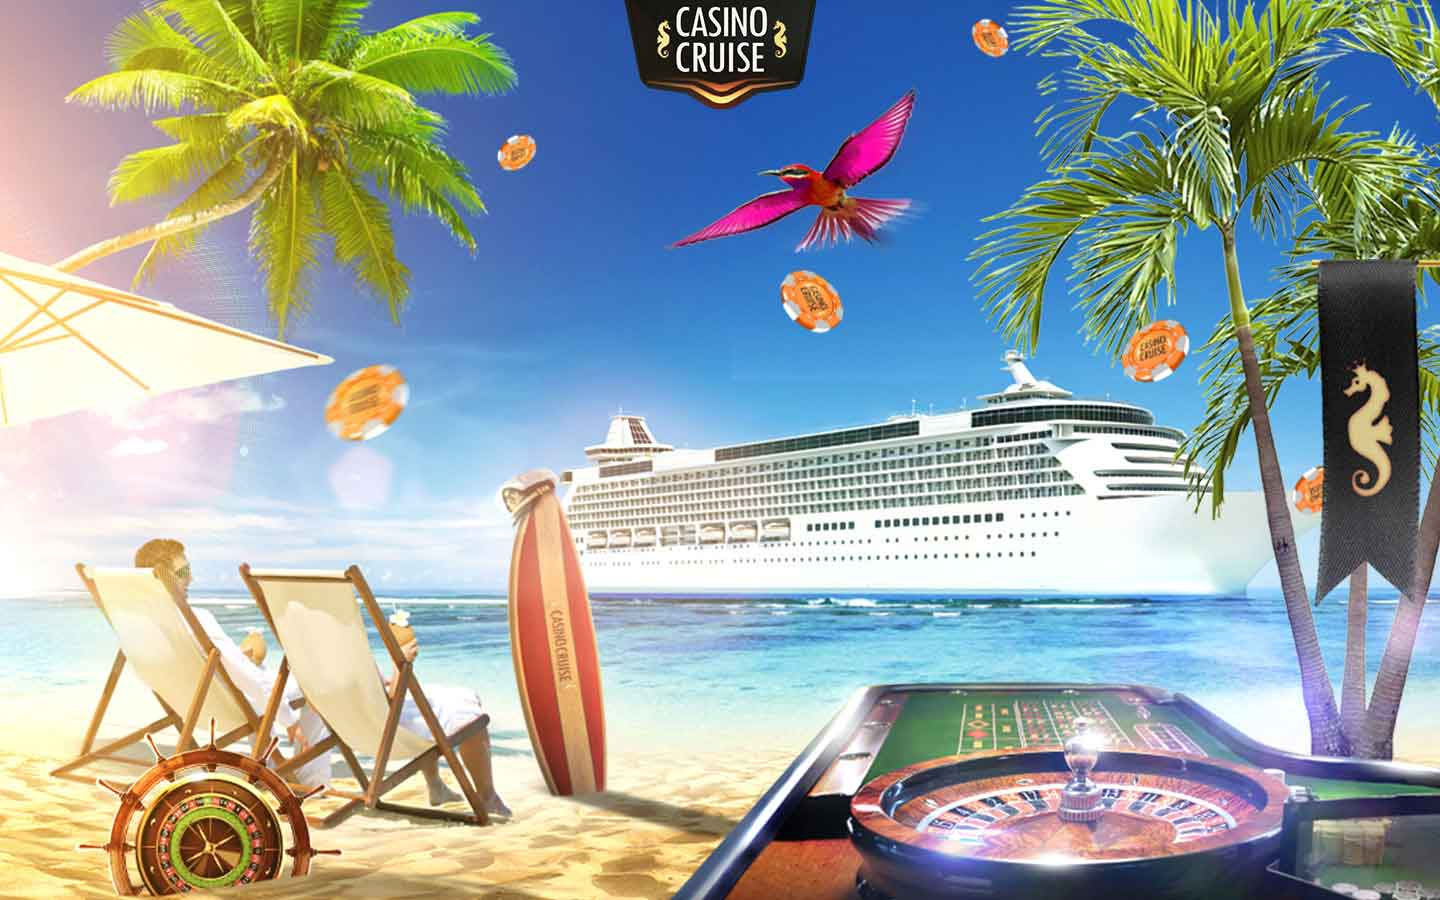 Win a cruise trip with Casino Cruise